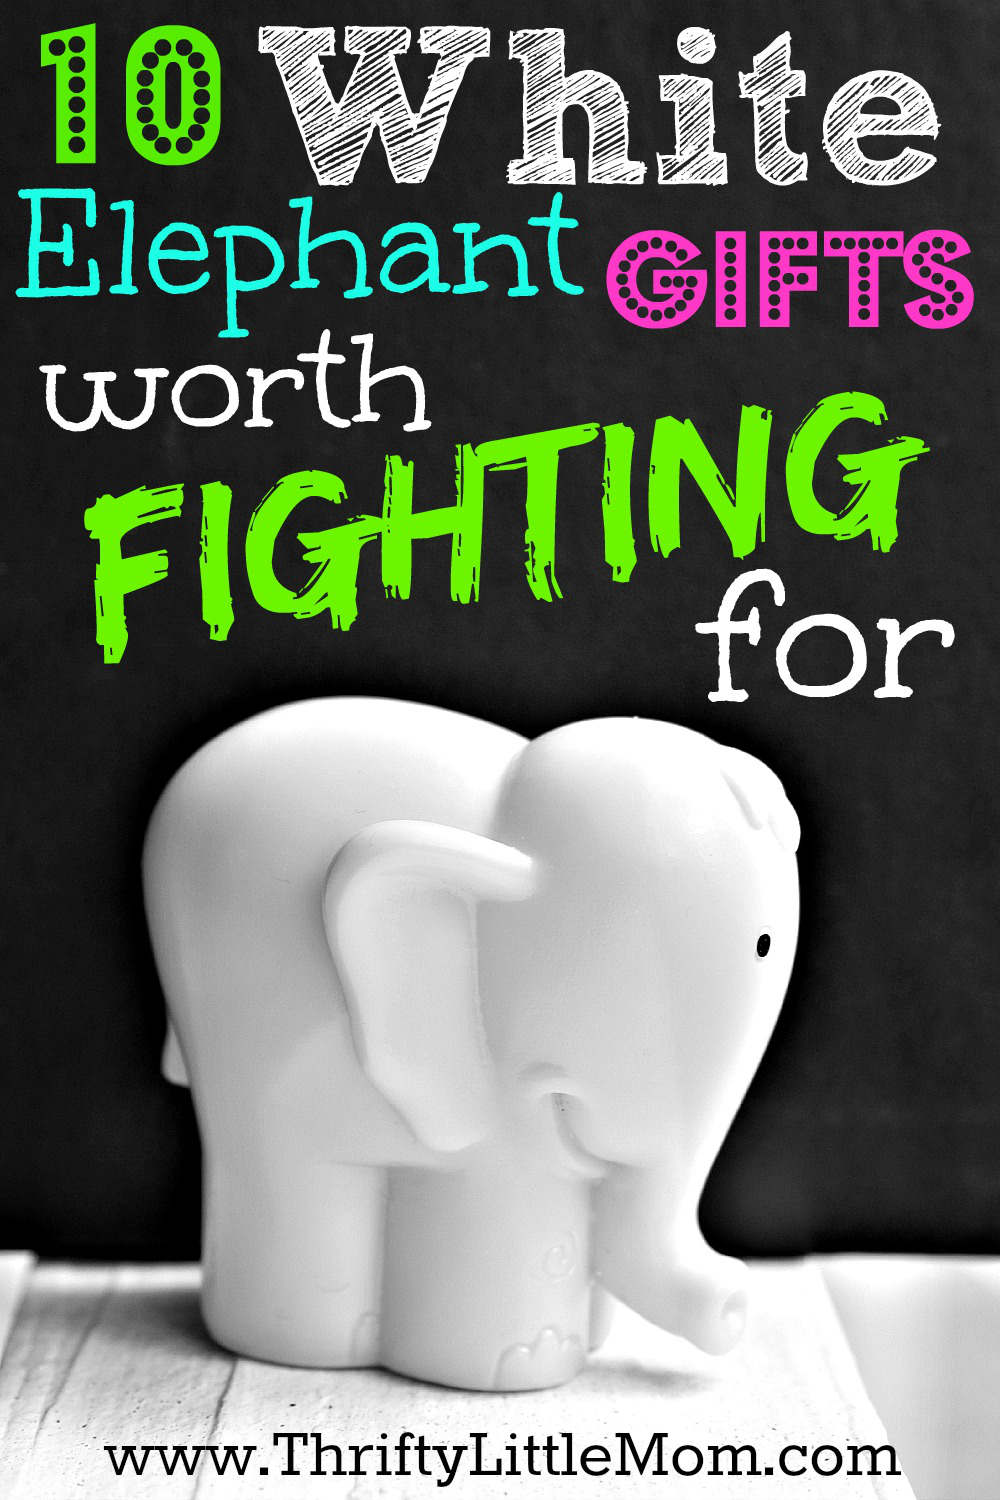 good white elephant gifts, yankee swap ideas, gift exchange ideas, white elephant ideas